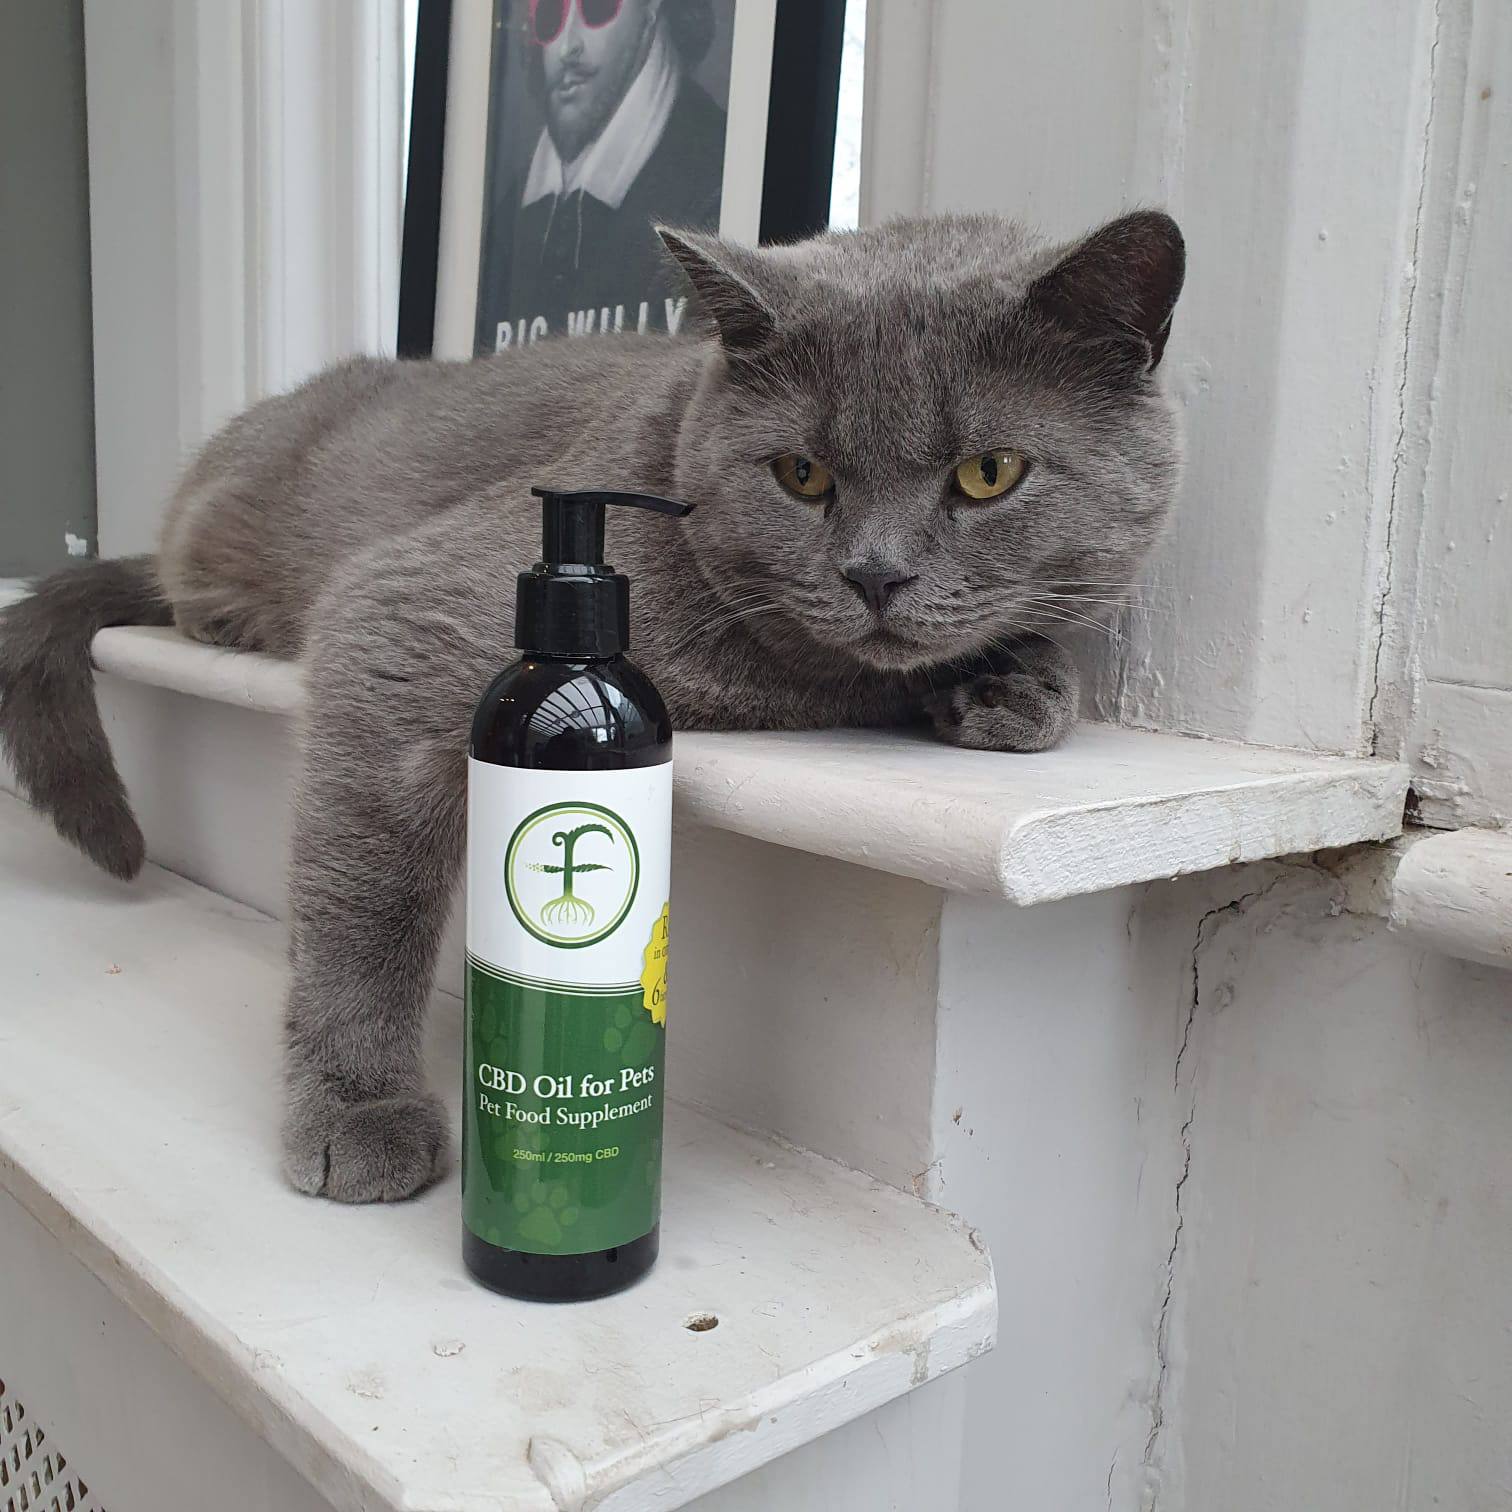 Cat pic pet oil-1